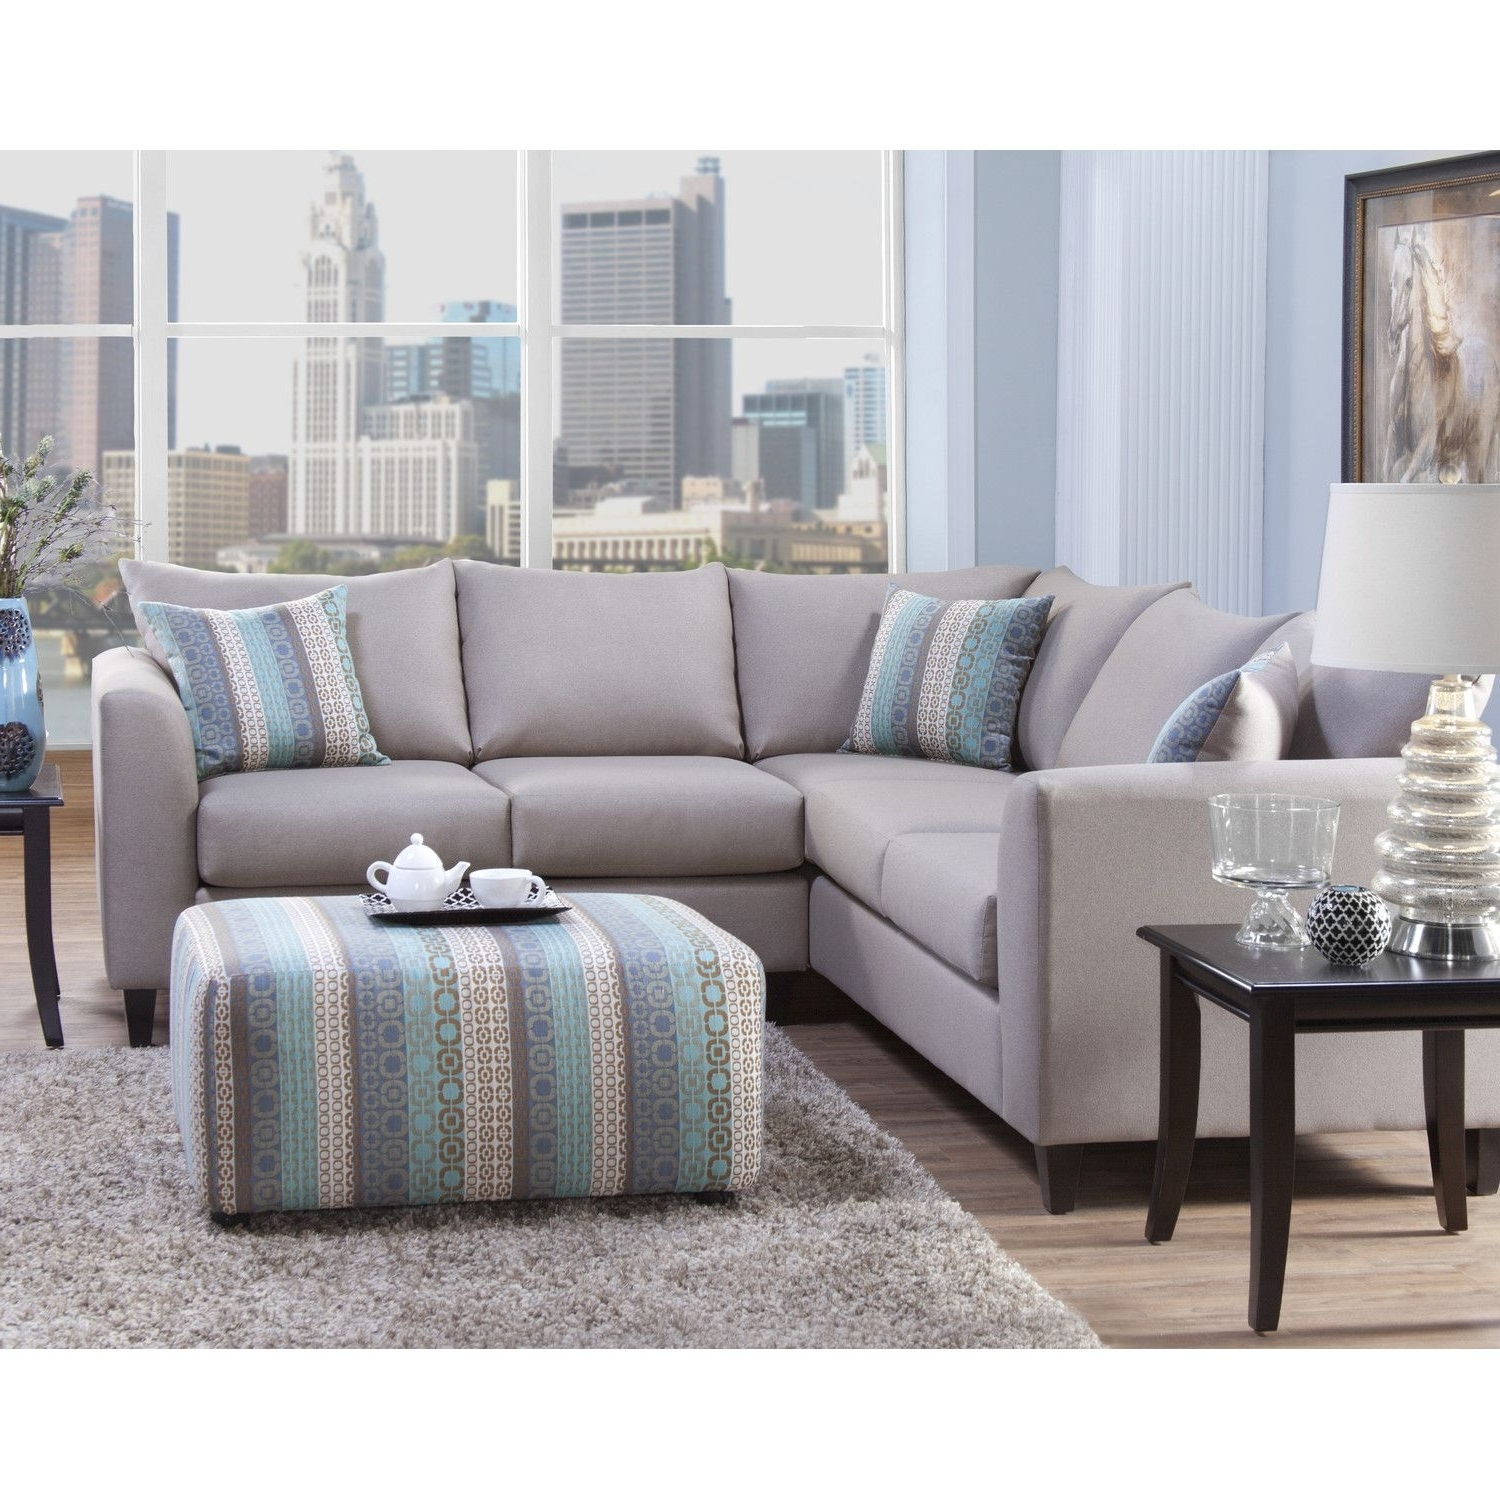 Free Shipping! Shop Wayfair For Serta Upholstery Sectional – Great Intended For Preferred Wayfair Sectional Sofas (View 4 of 20)